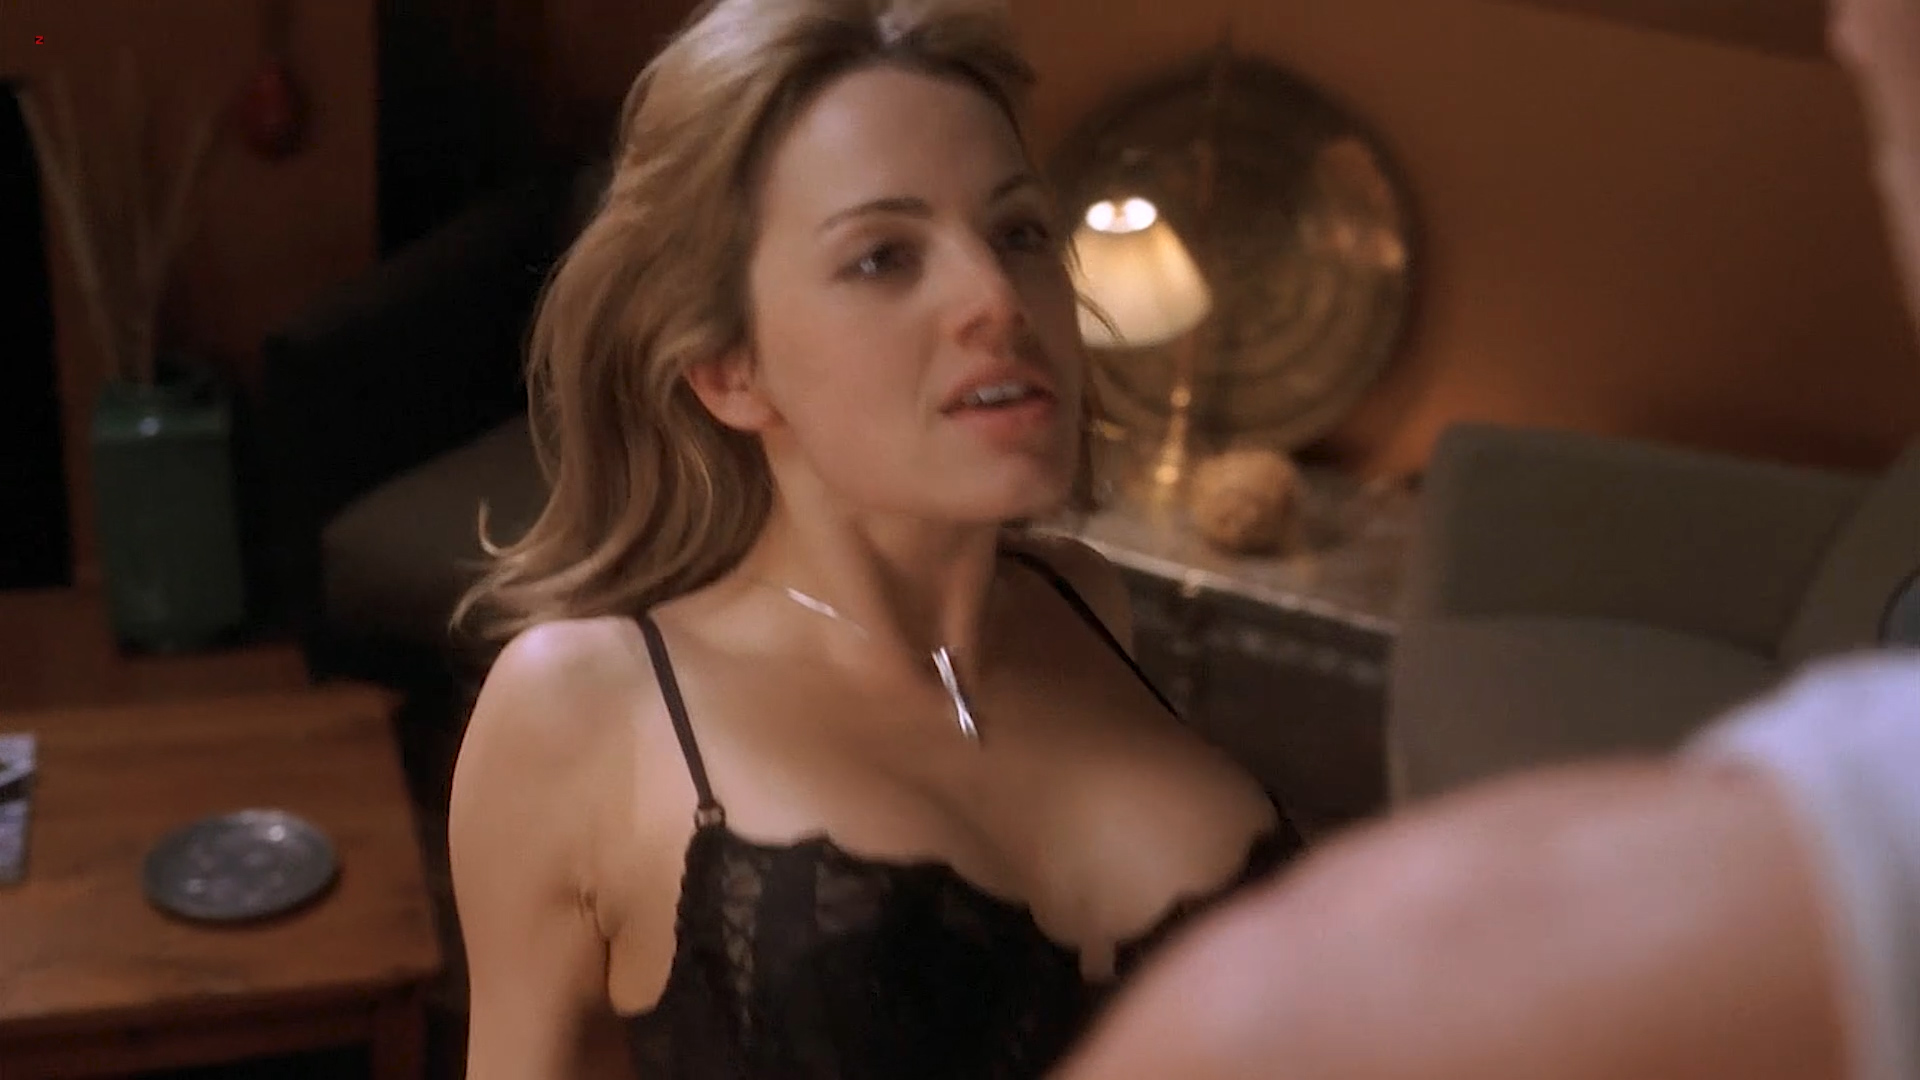 Erica durance masterbating, exhibitionism sex stories